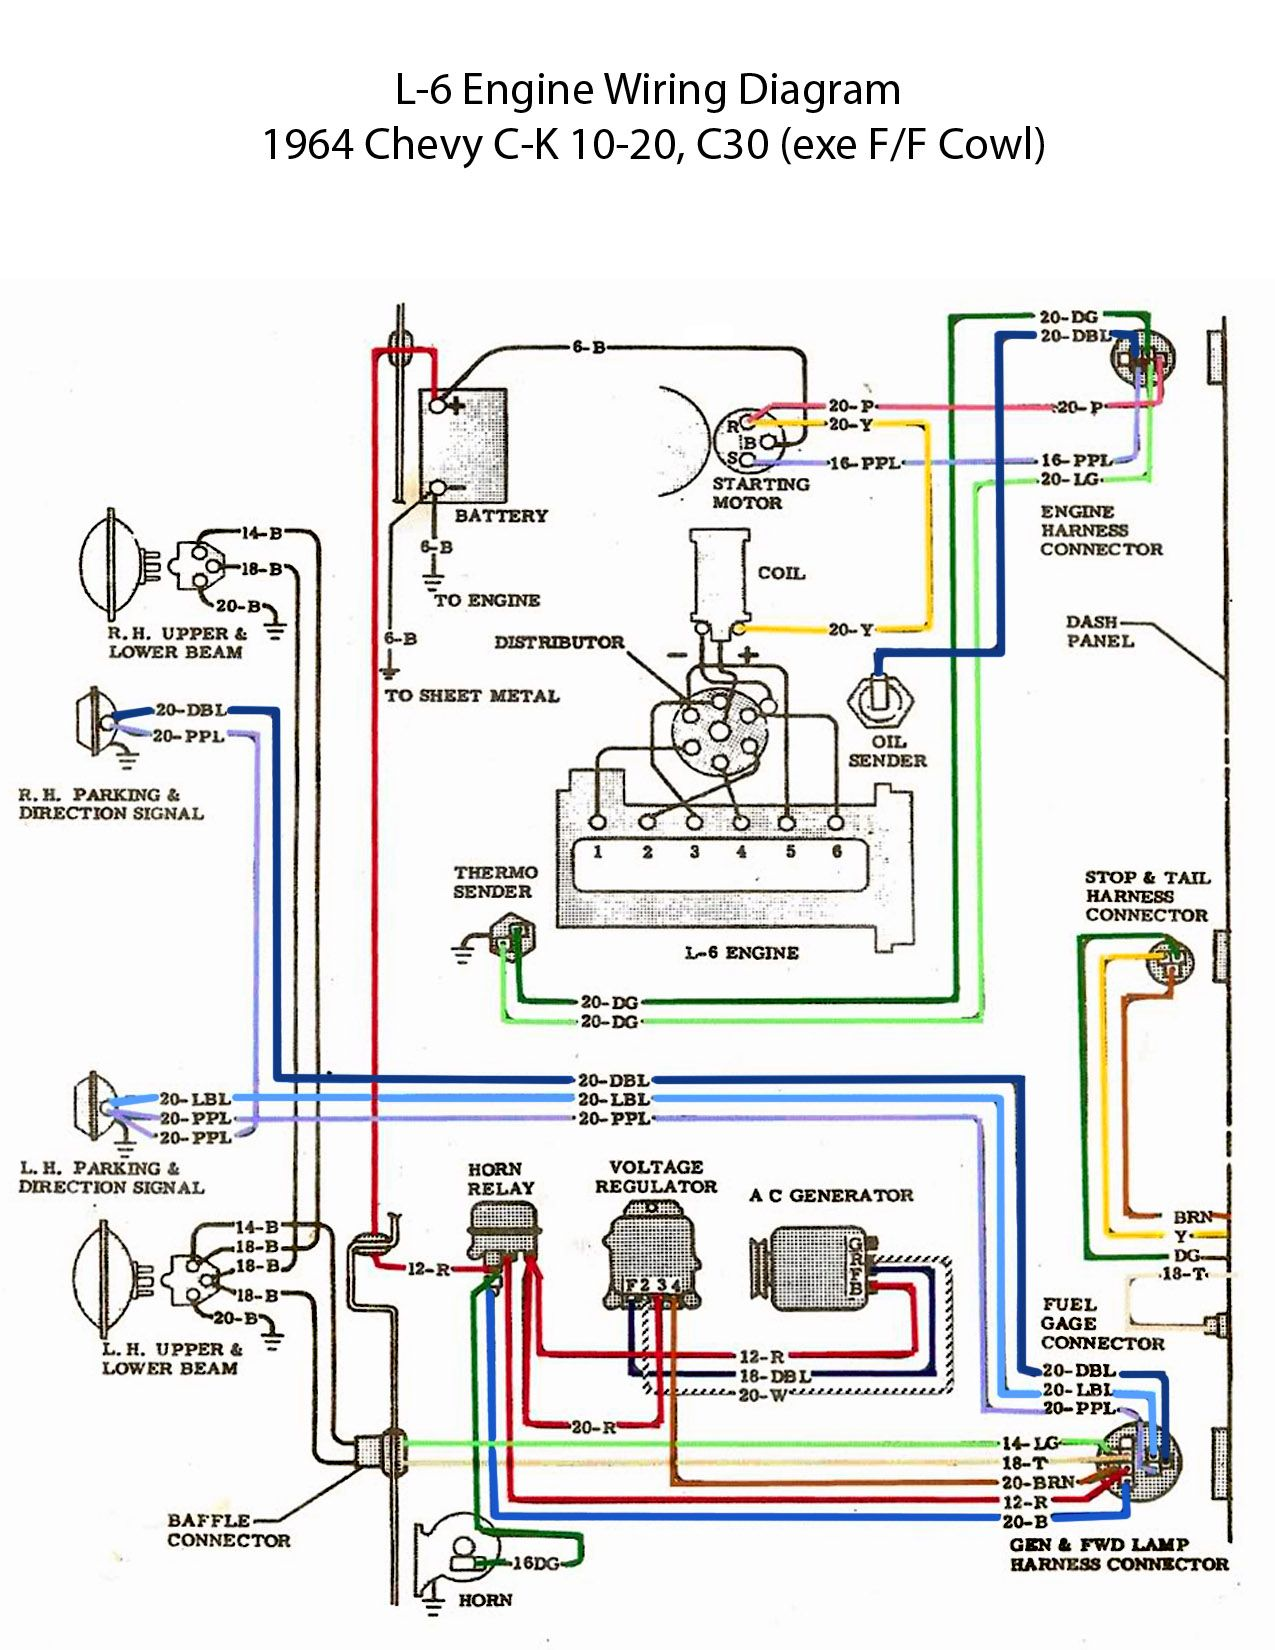 Electric L6 Engine Wiring Diagram '60s Chevy C10. Electric L6 Engine Wiring Diagram. Chevrolet. Carb 305 Chevy Engine Wiring Diagram At Scoala.co